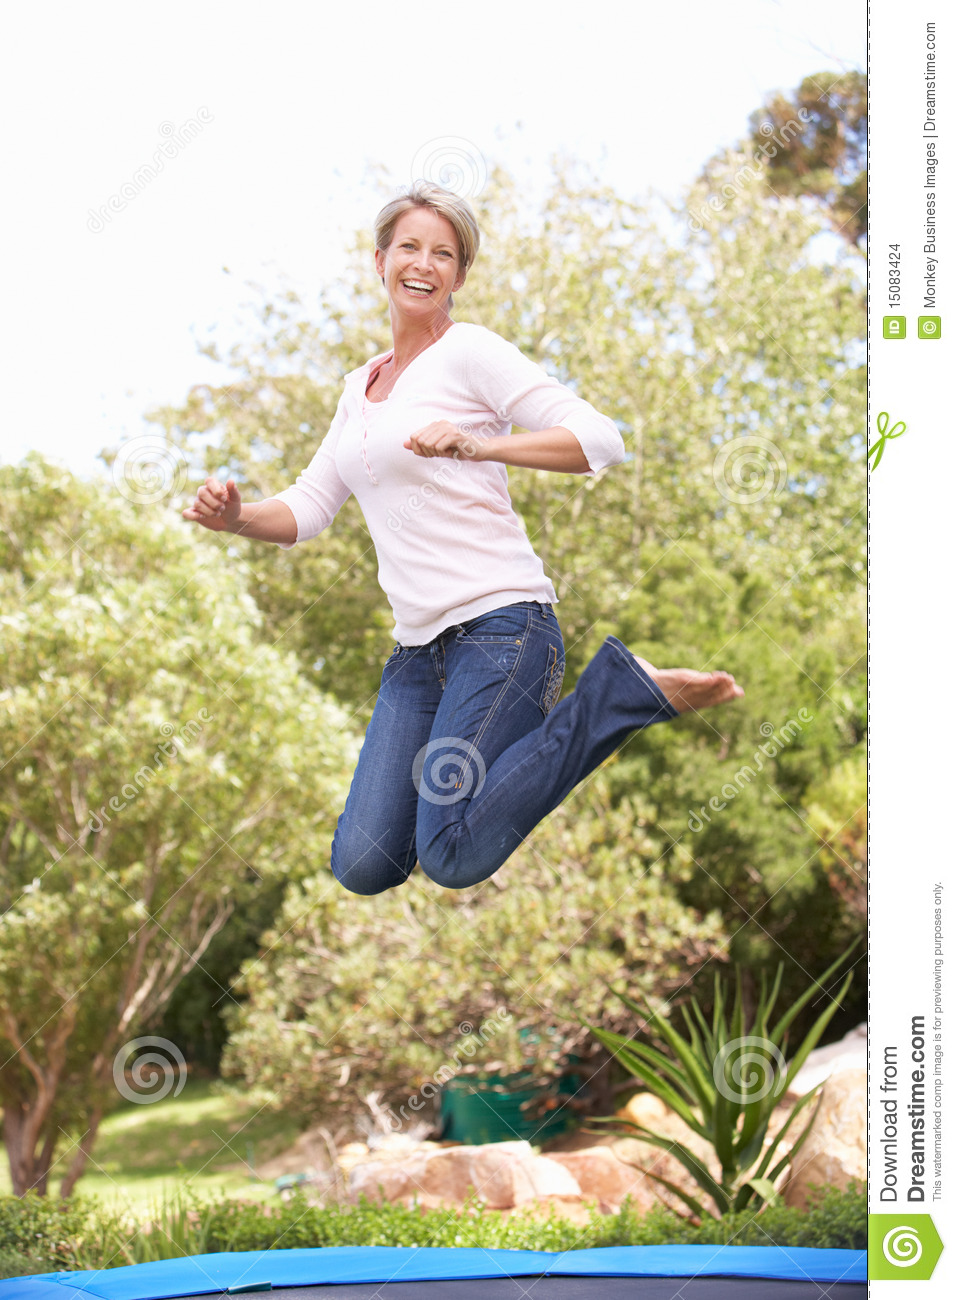 Woman Jumping Trampoline In Garden Stock Image